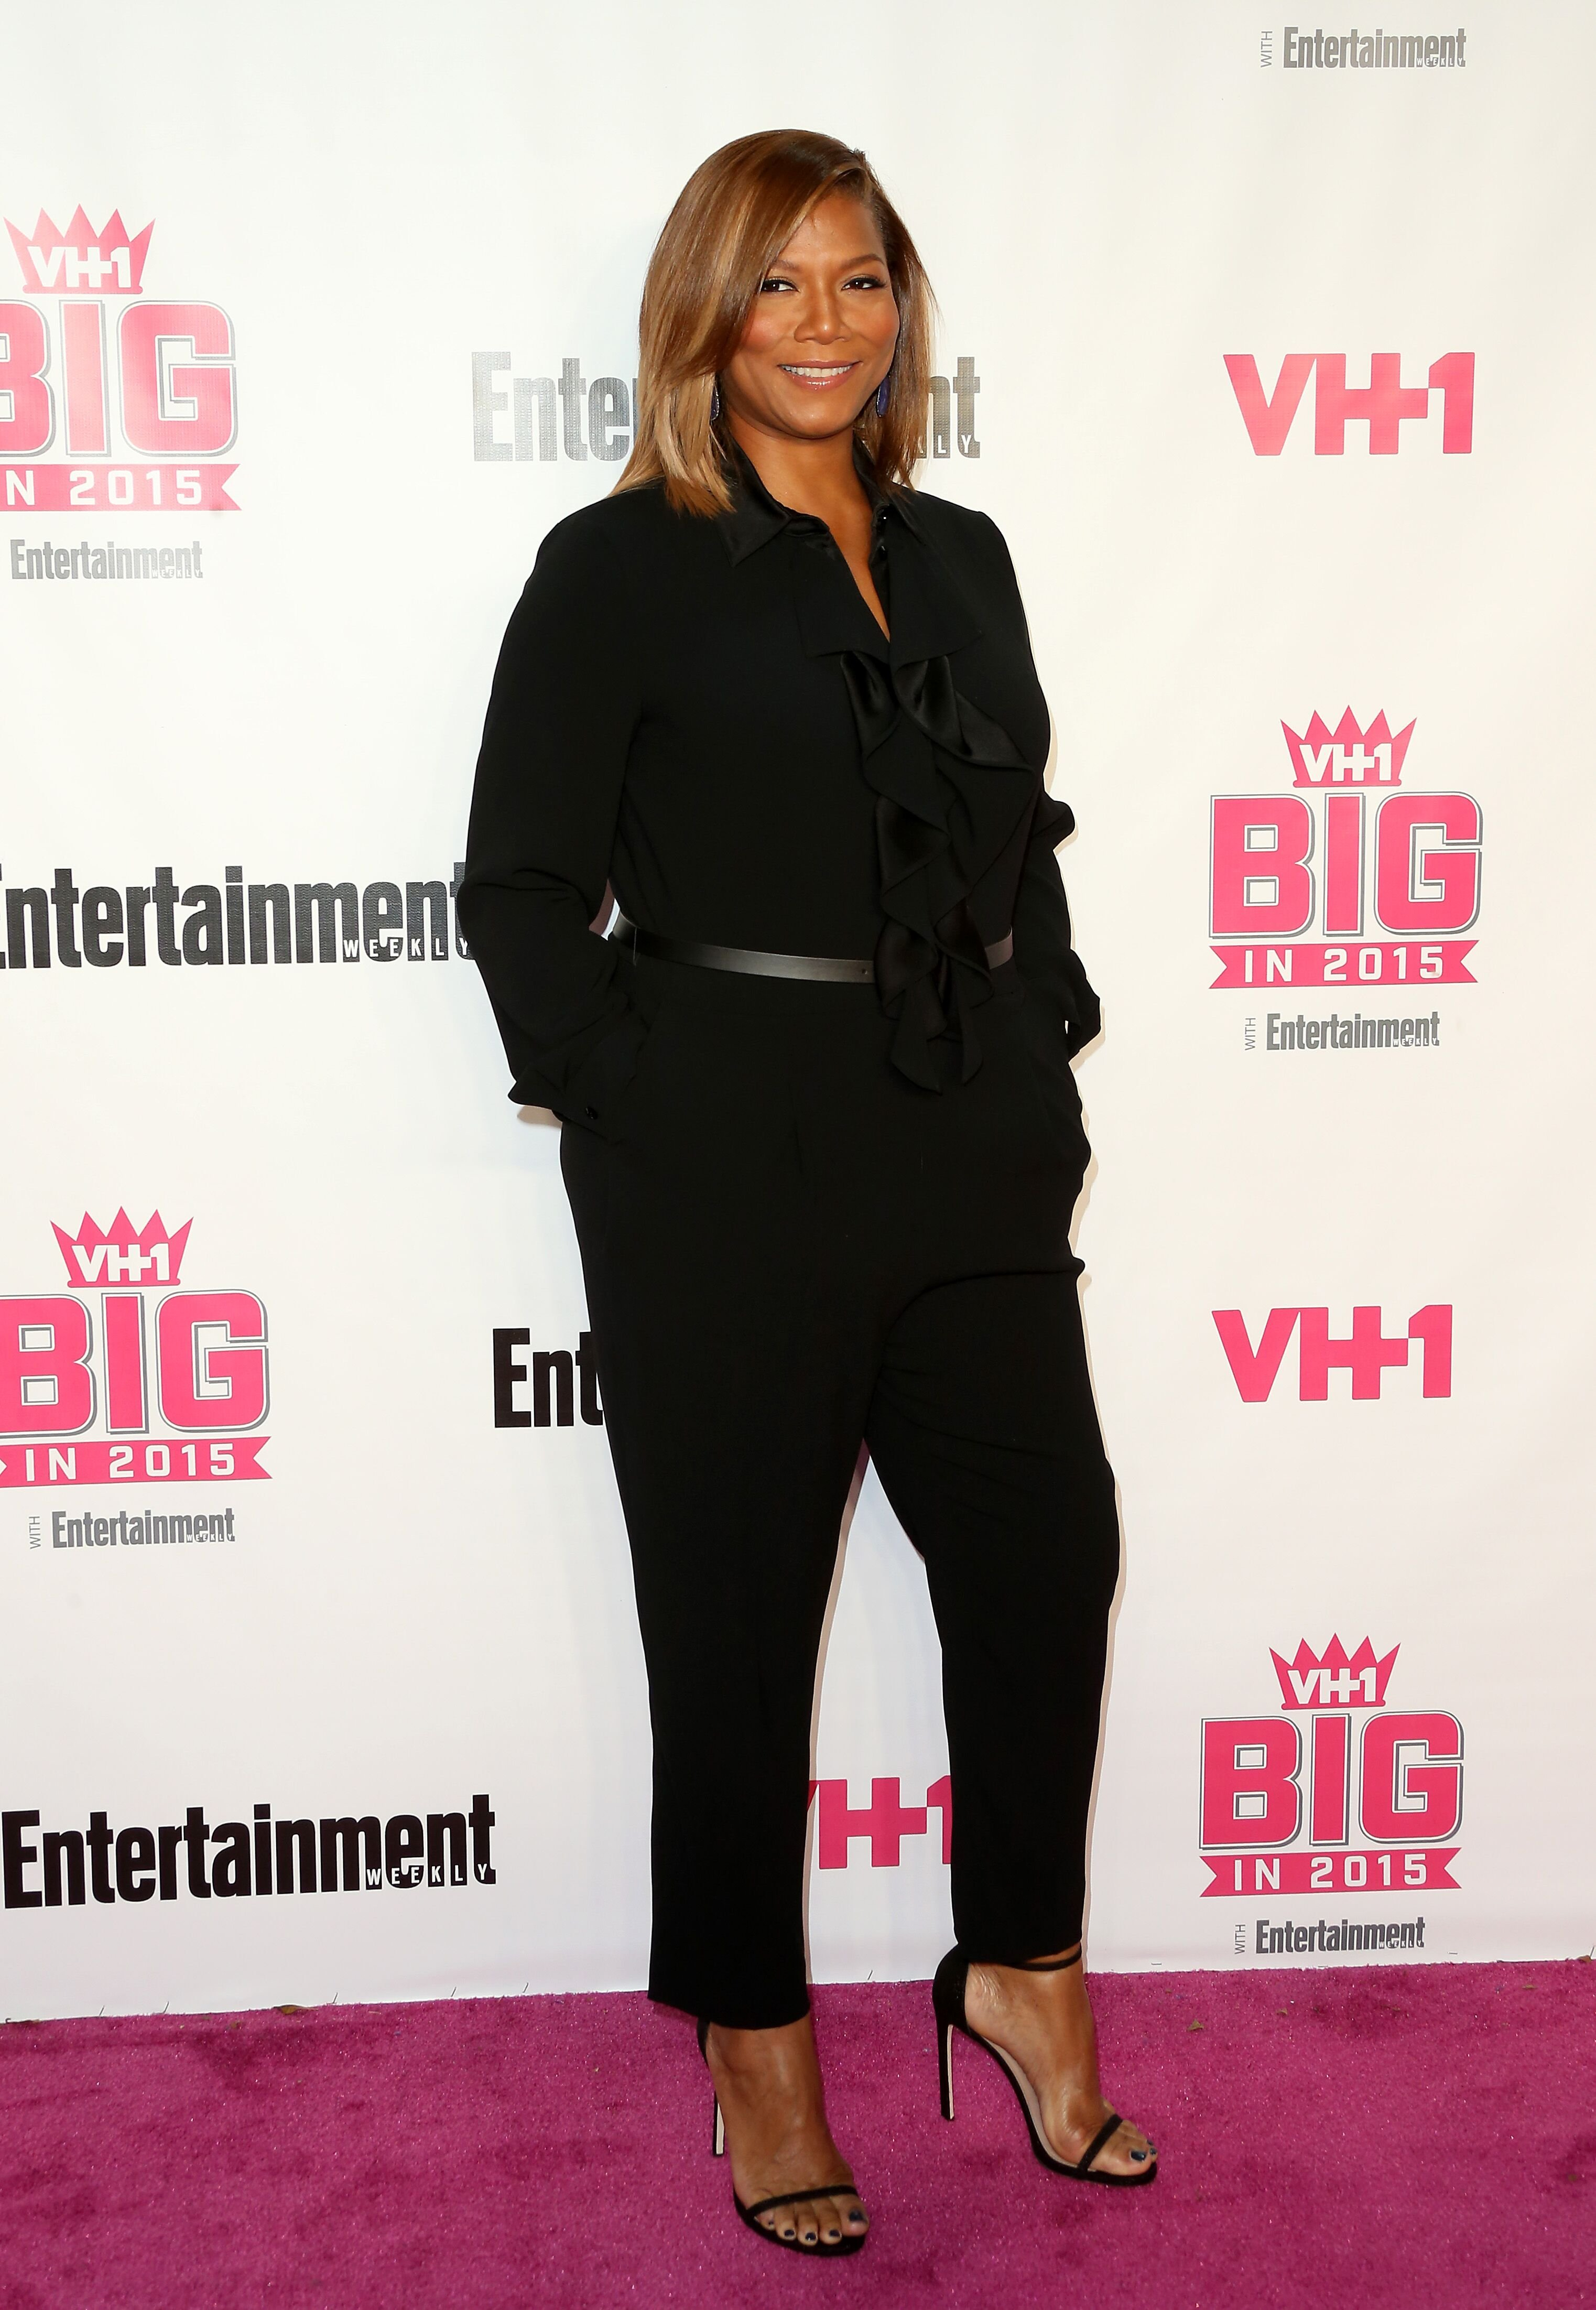 Actress Queen Latifa attends VH1 Big In 2015 With Entertainment Weekly Awards at Pacific Design Center on November 15, 2015 | Photo: Getty Images